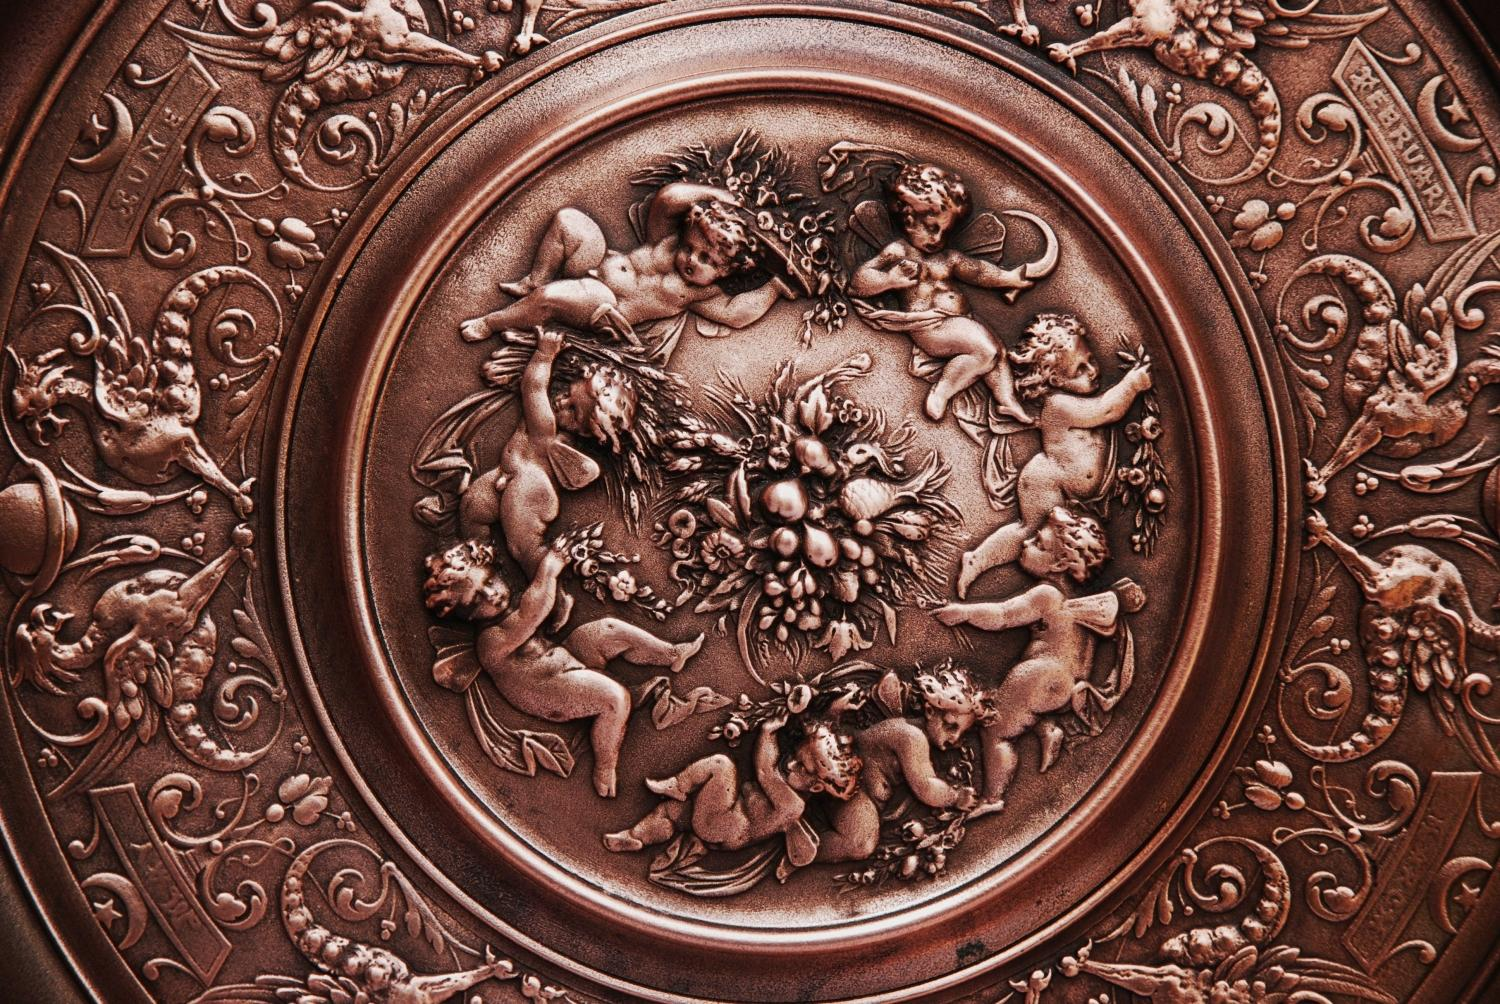 Late 19thc decorative copper charger